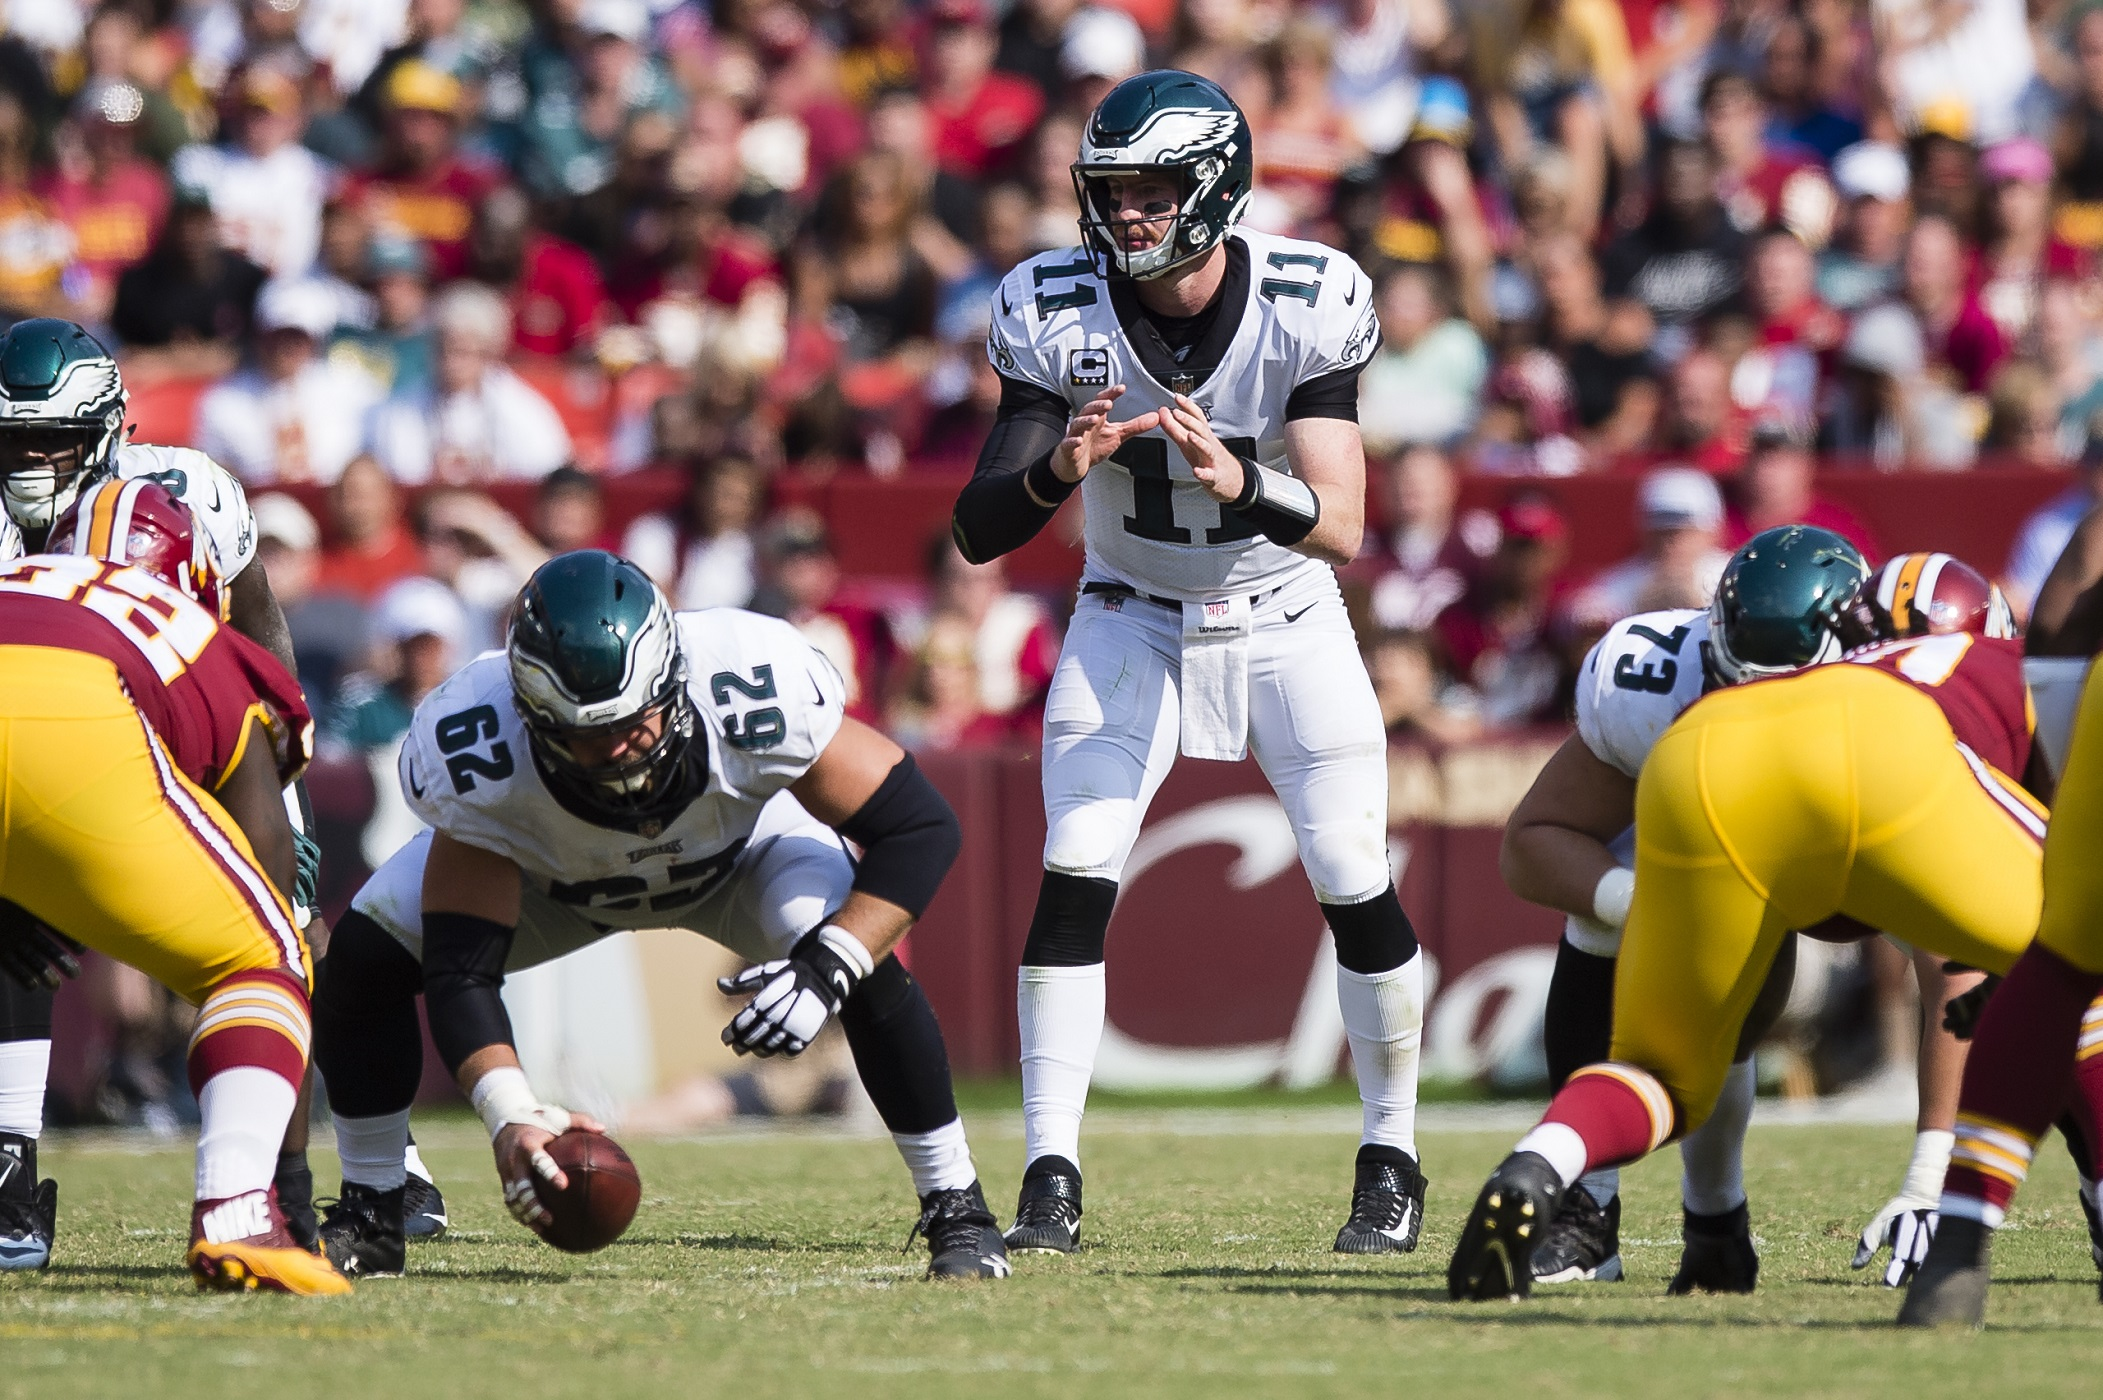 ... city chiefs nike name number logo long 33d17 a1c27  netherlands nfl  week 2 preview eagles at chiefs offensive tackle mitchell schwartz 71 of  the kansas 98e7783a0